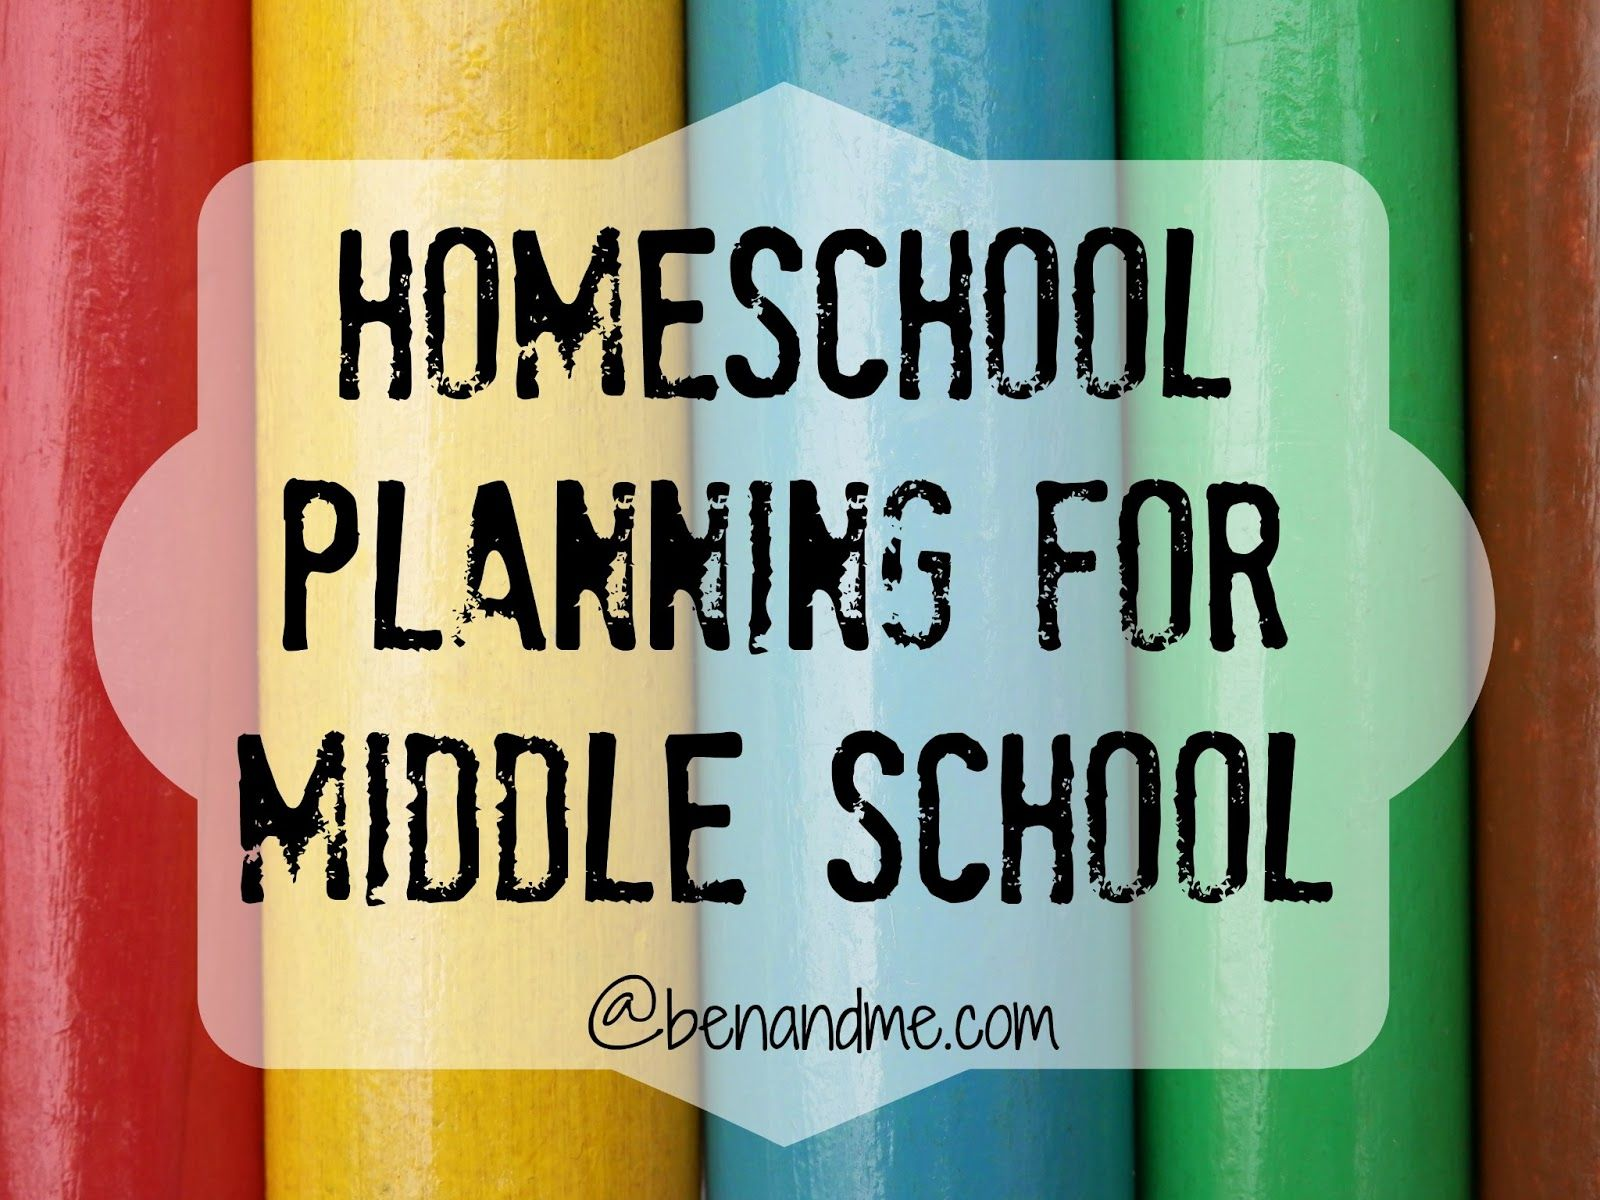 Homeschool Planning For Middle School Goals And